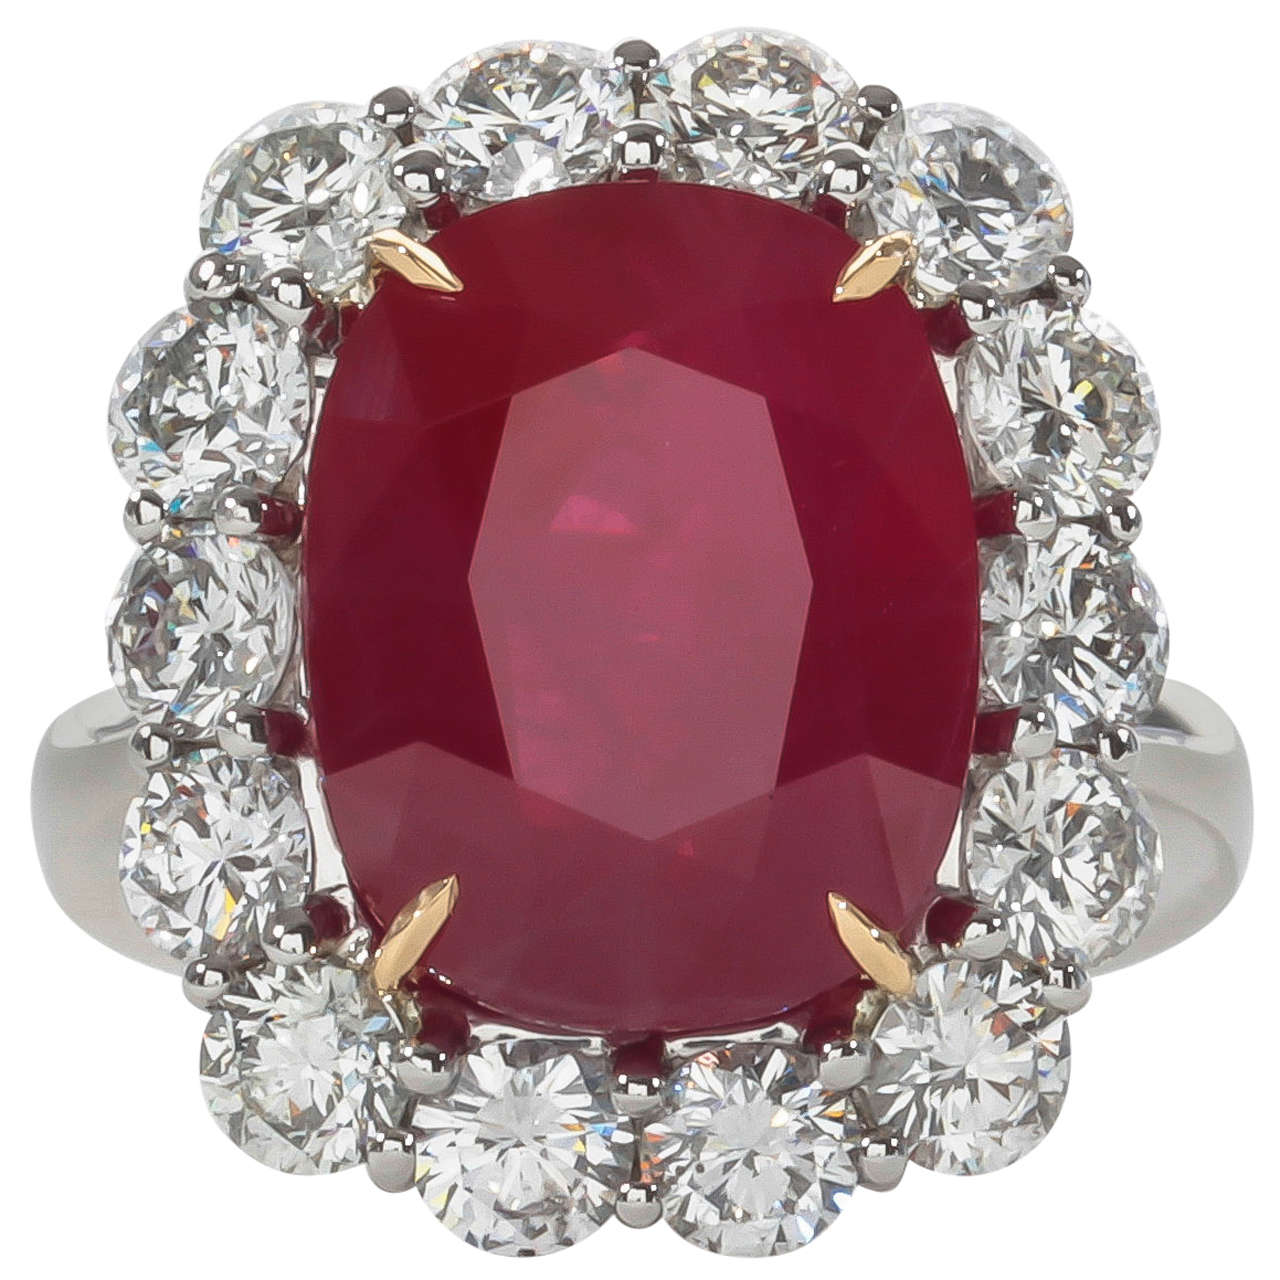 Rare 10 Carat Burma Ruby Diamond Ring For Sale at 1stdibs